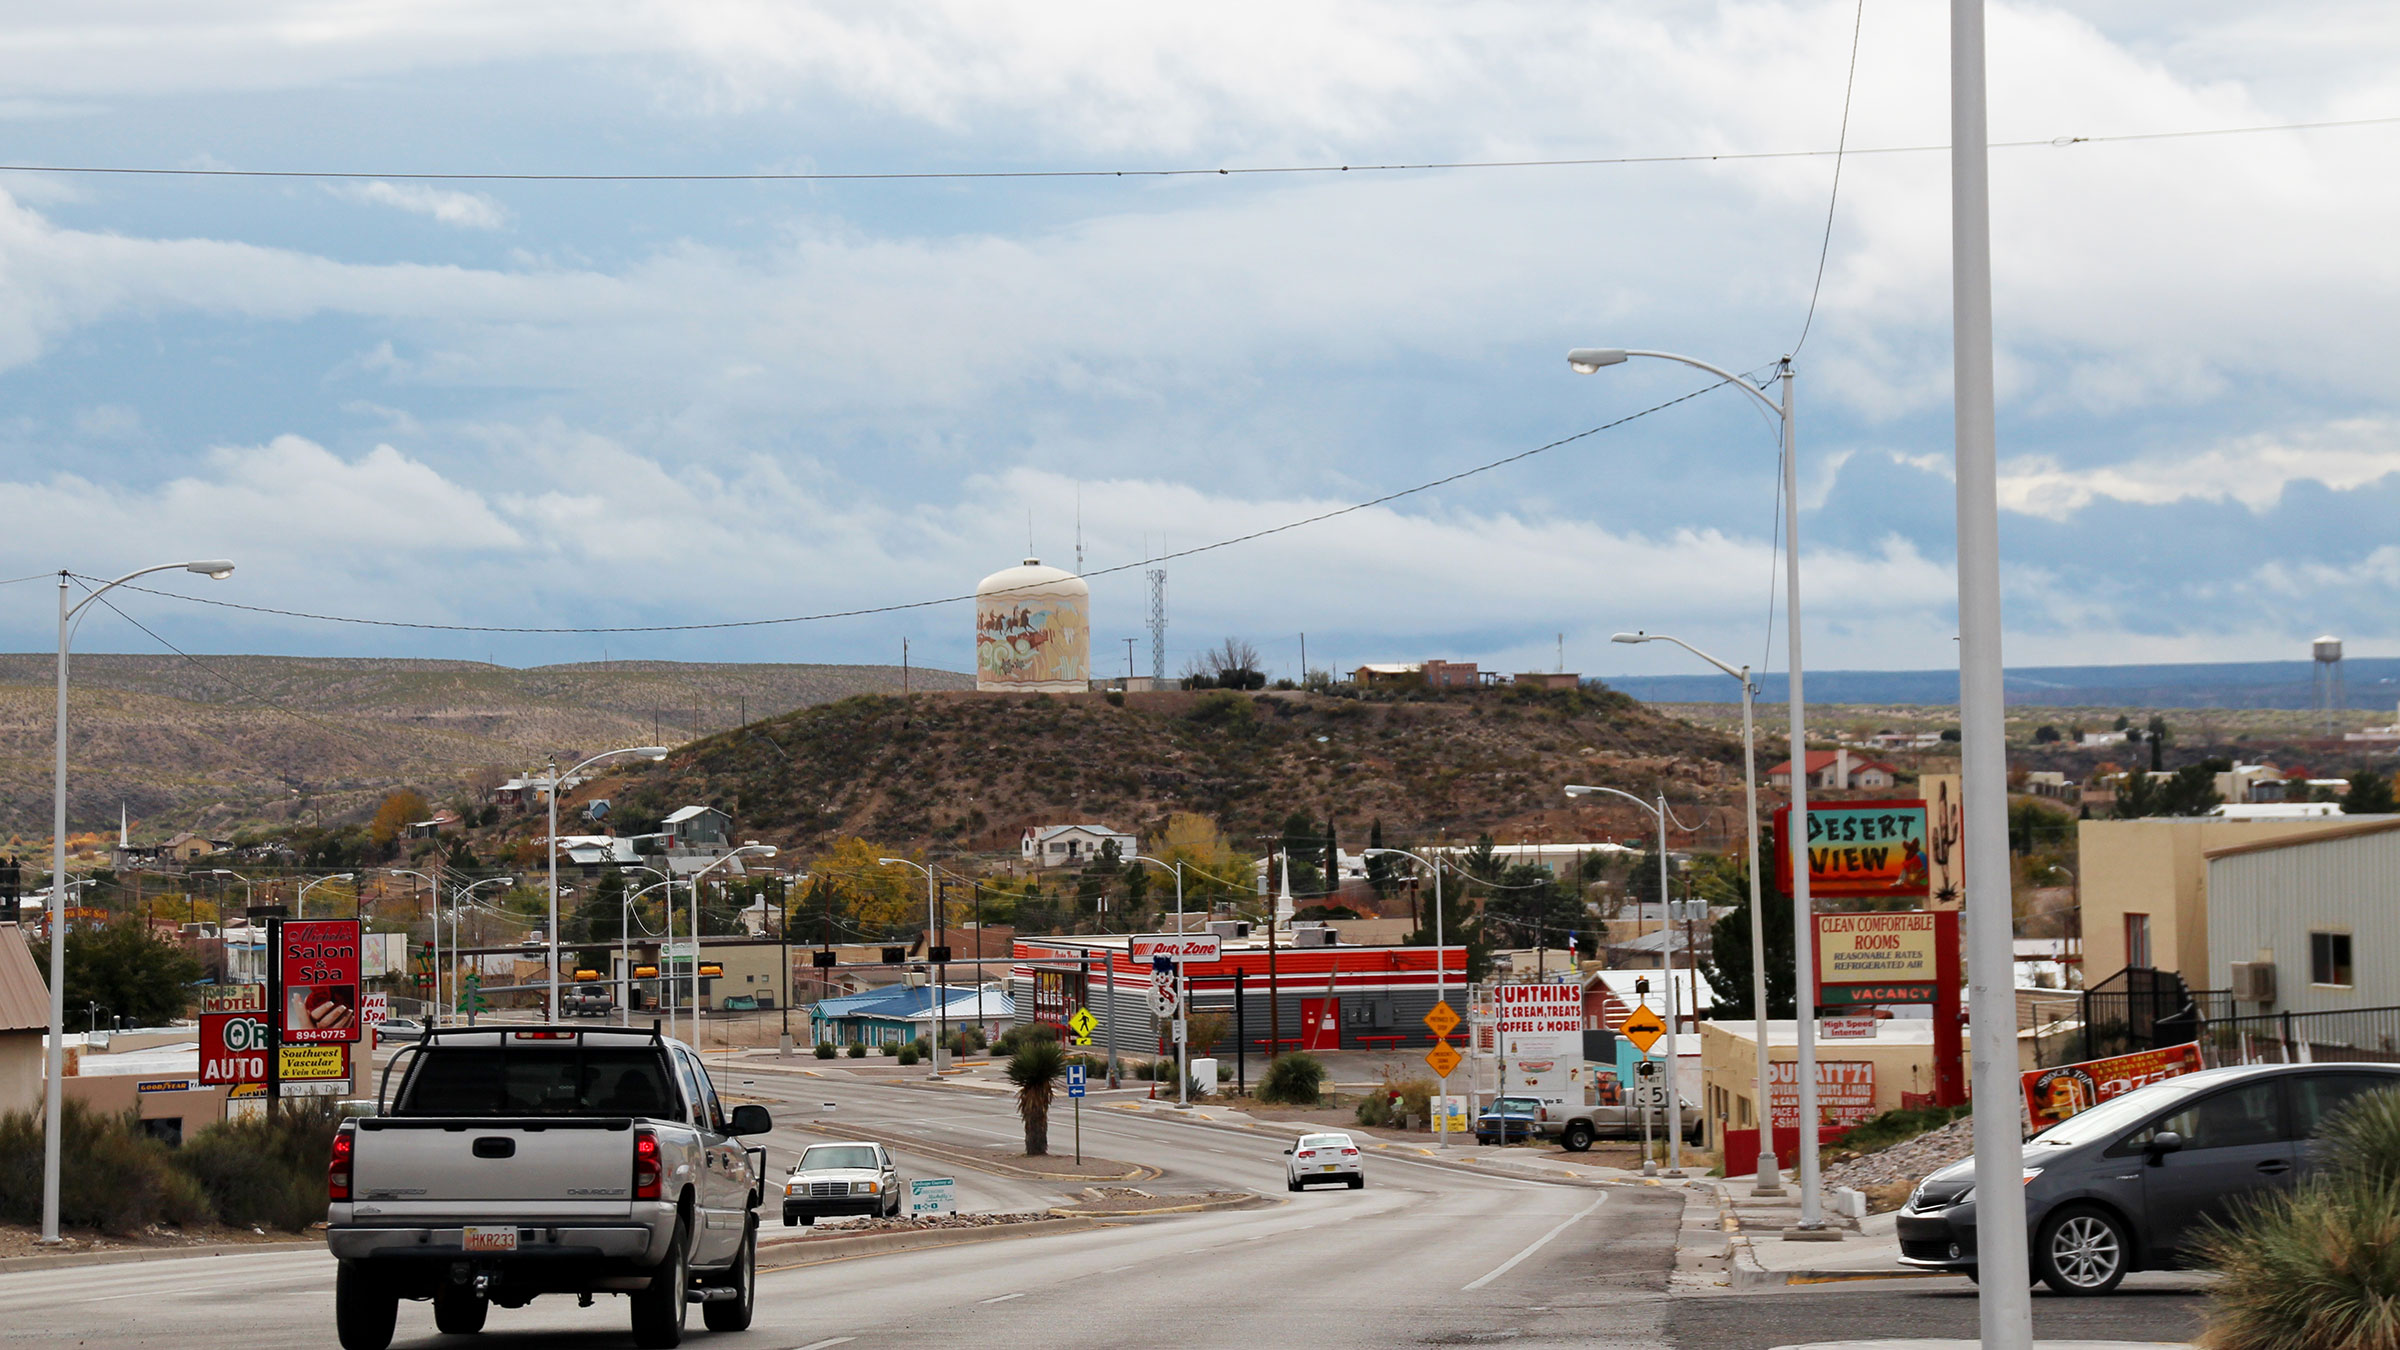 Cars drive through the town of Truth or Consequences, New Mexico.